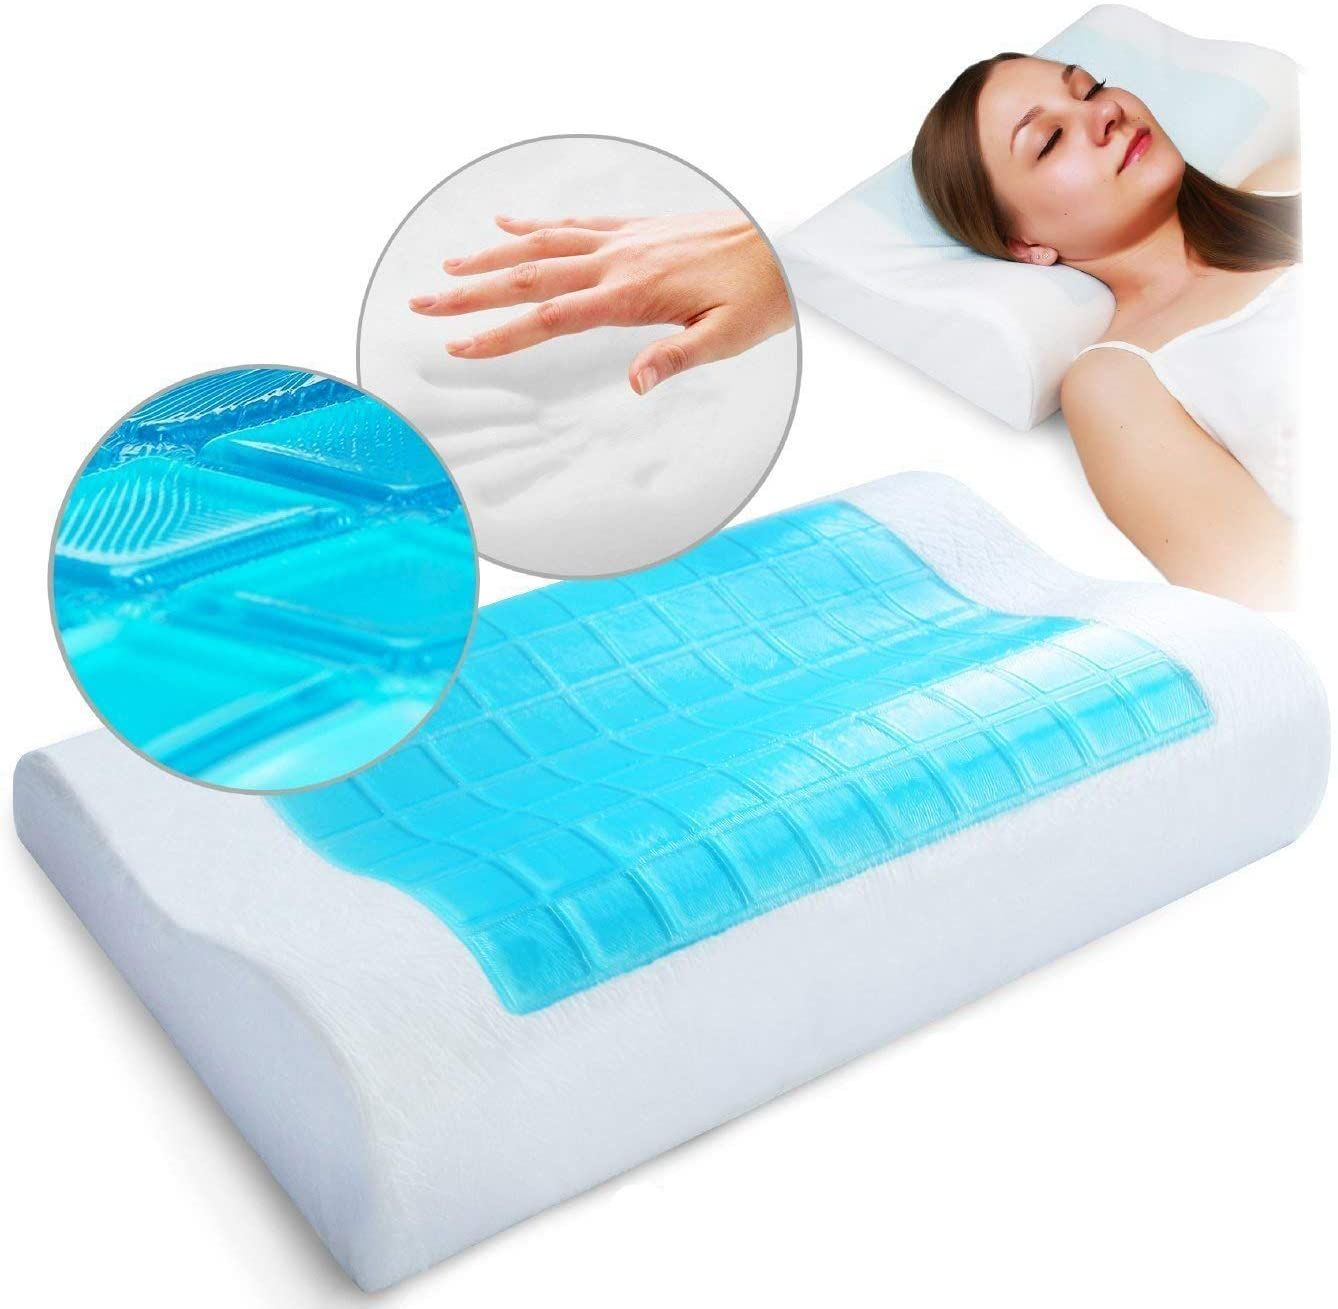 Top 5 Best Pillow For Neck Arthritis In India In 2020 Cervical Pillows Memory Foam Pillow Foam Pillows